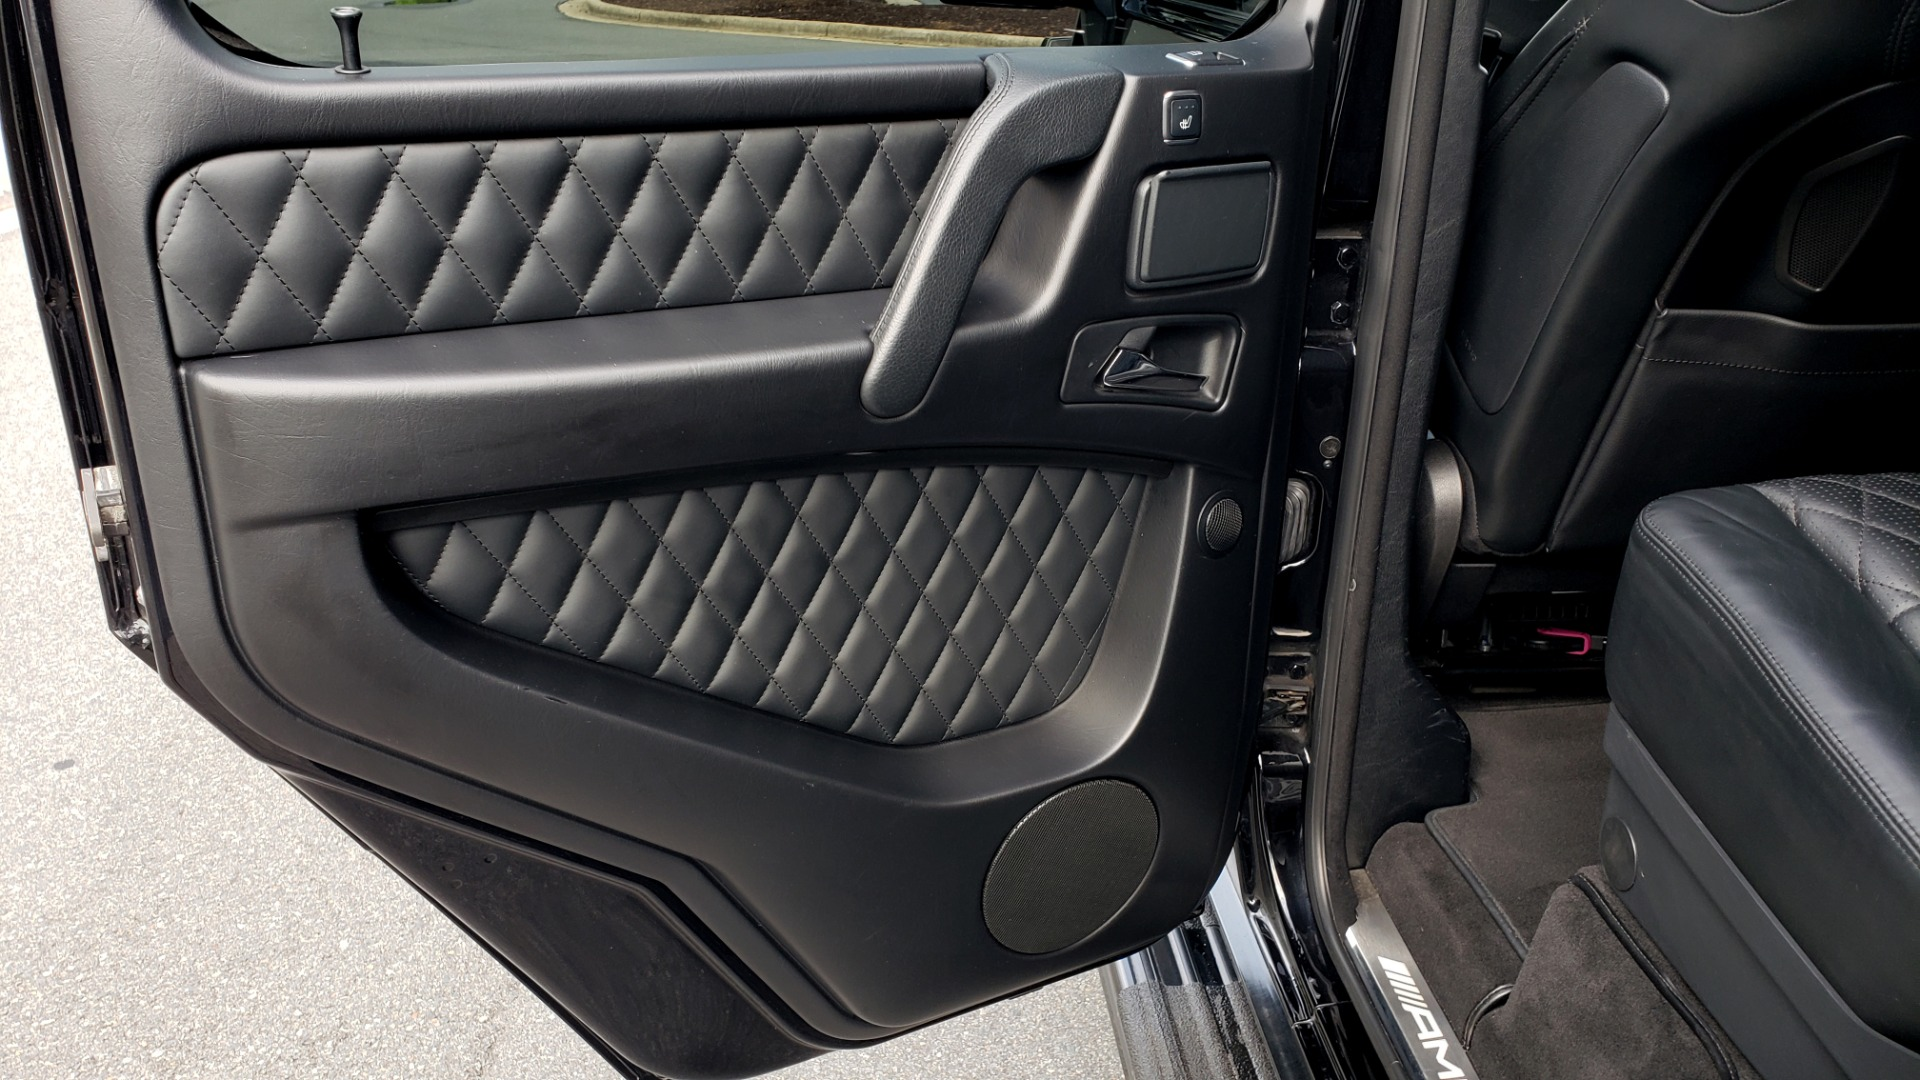 Used 2016 Mercedes-Benz G-CLASS AMG G 63 4MATIC / NAV / SUNROOF / H/K SND / ENT SYS / REARVIEW for sale $99,000 at Formula Imports in Charlotte NC 28227 53